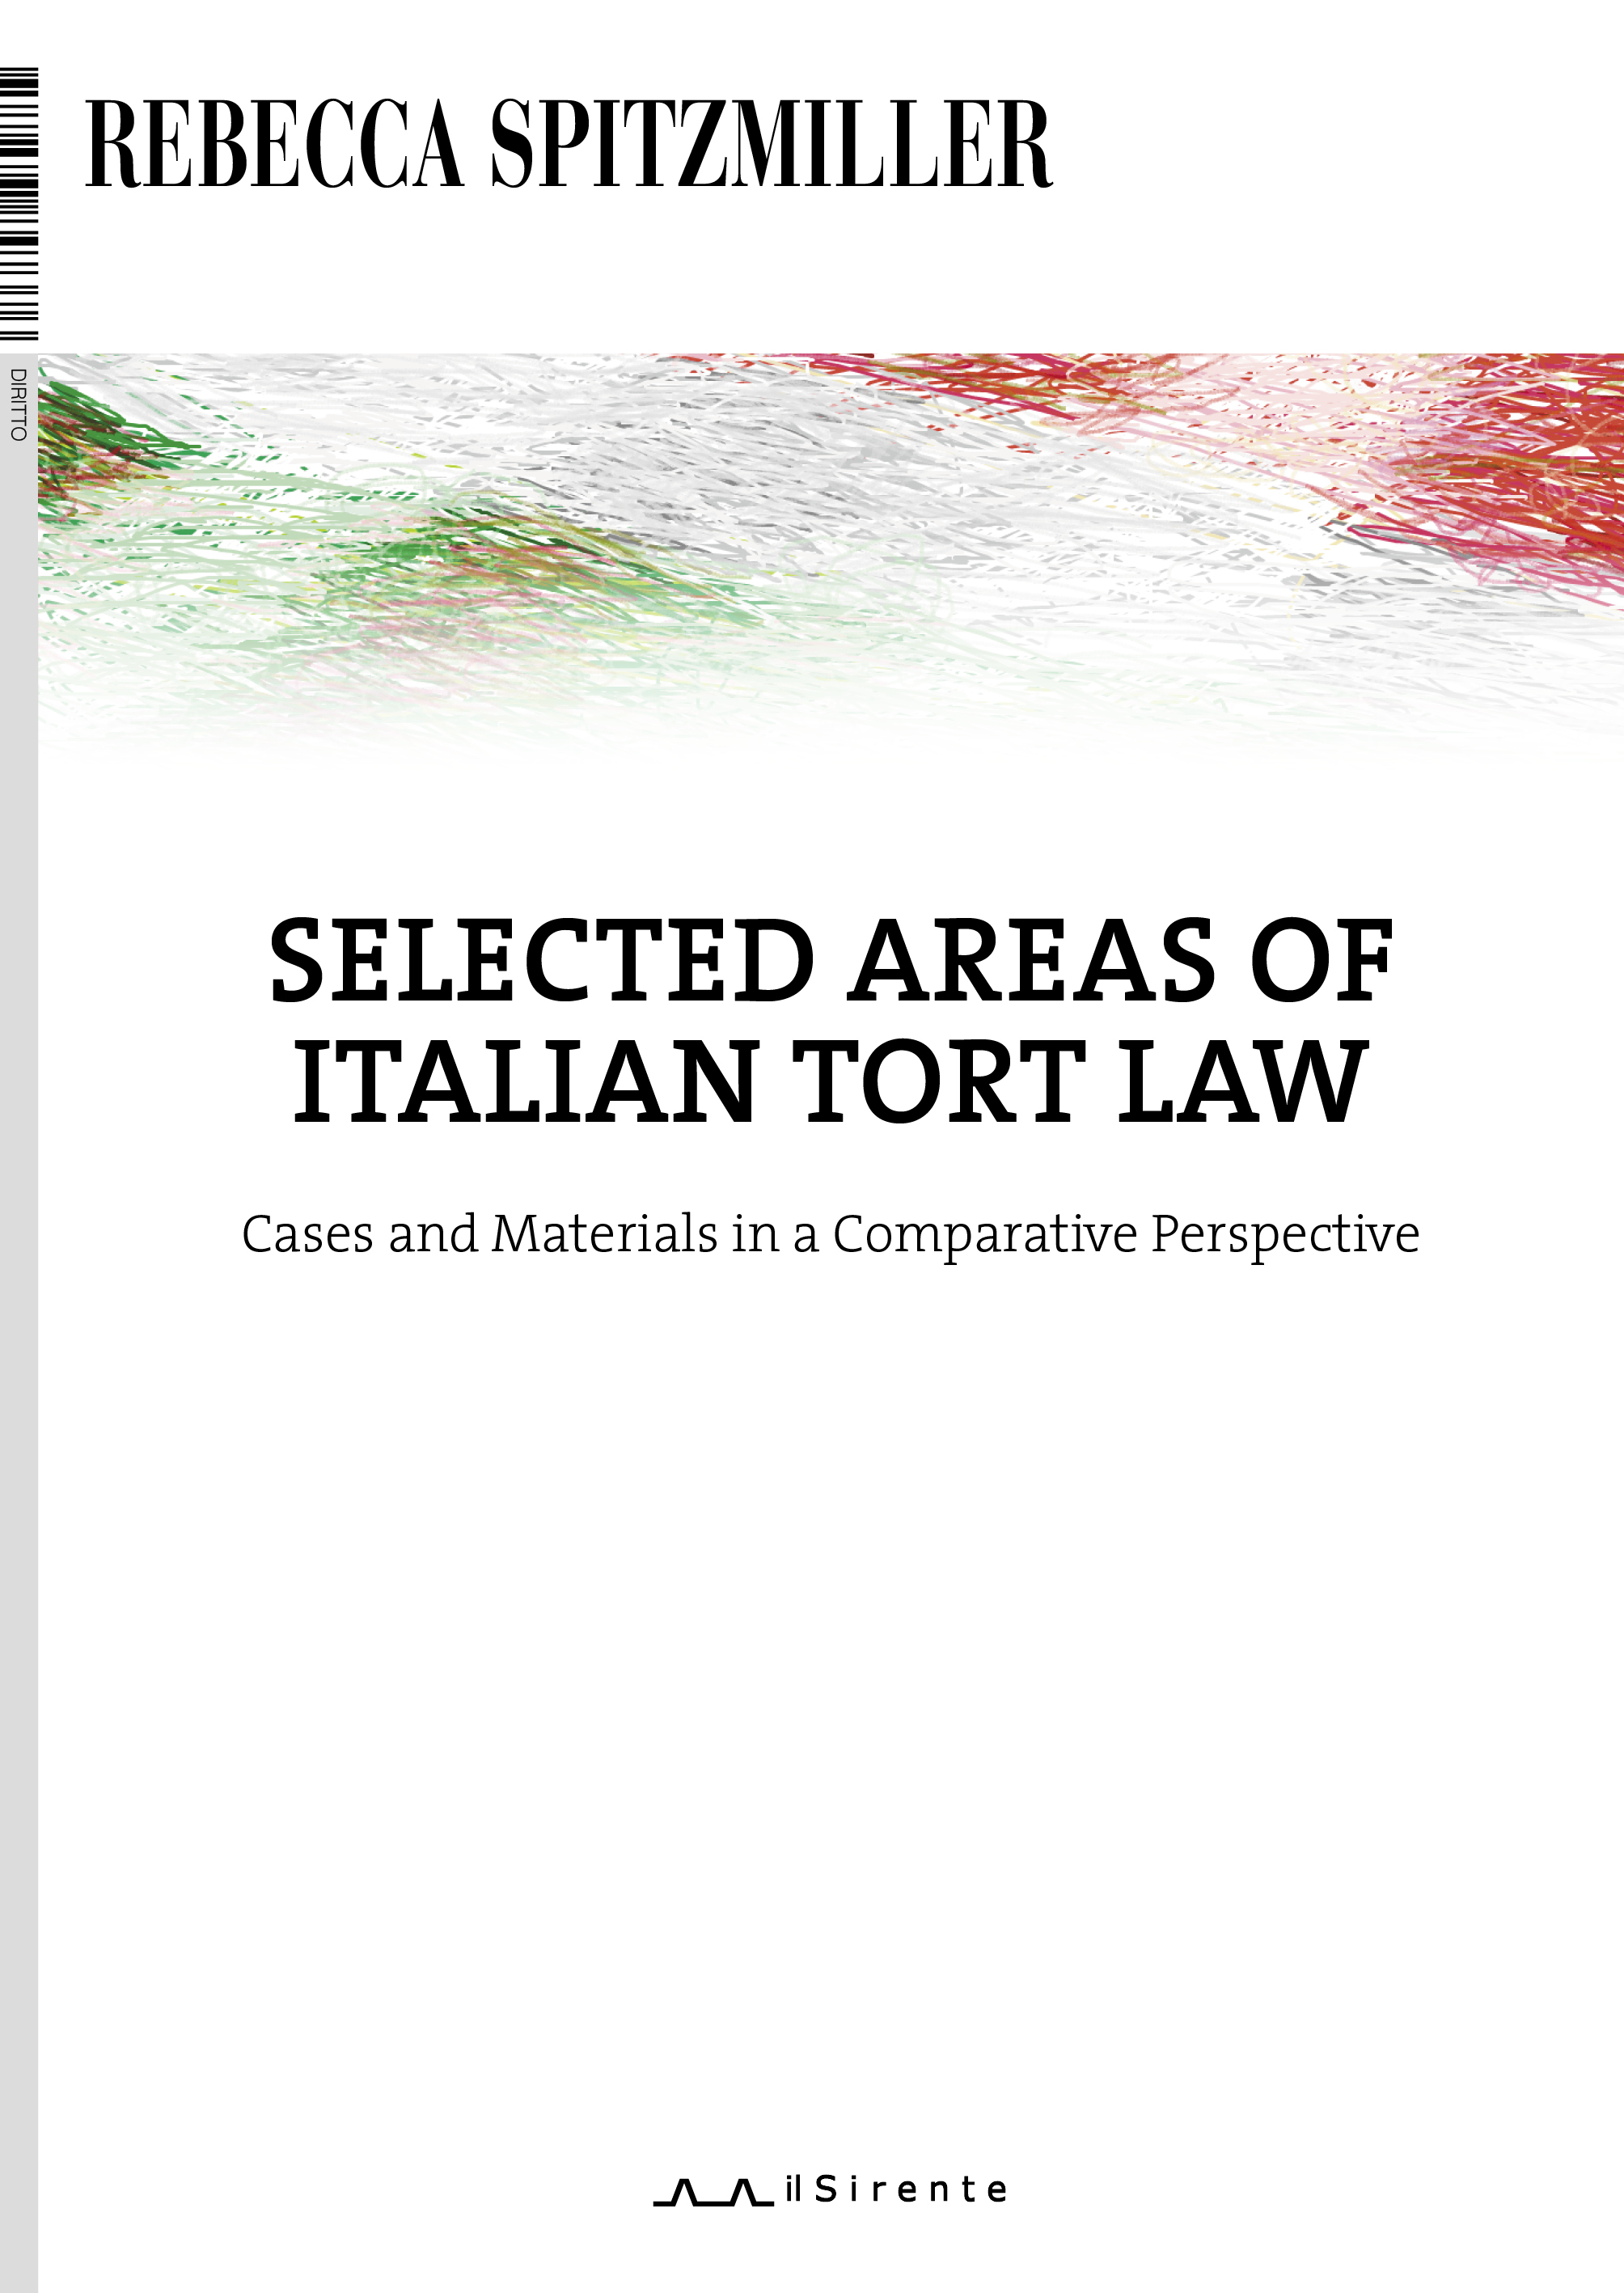 Selected Areas of Italian Tort Law (Rebecca Spitzmiller)